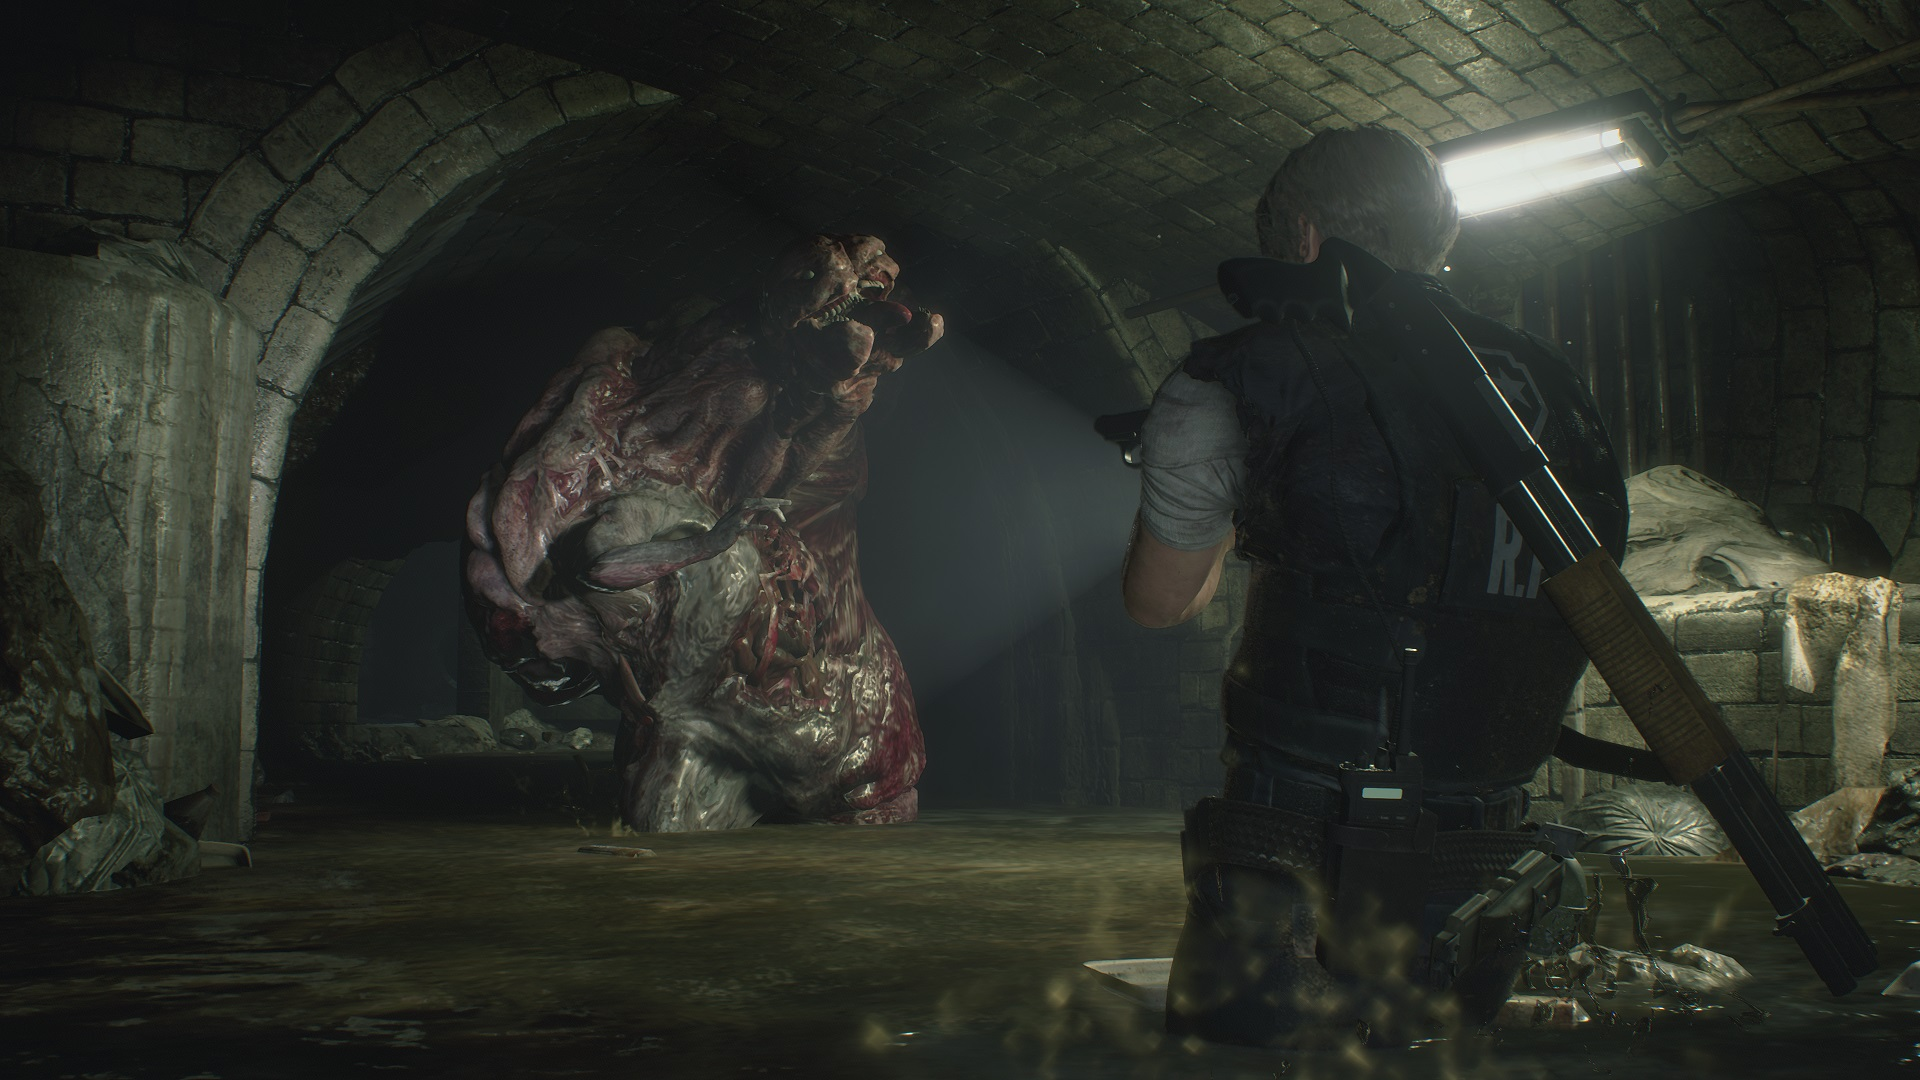 Resident Evil 2 S Horrible Humans Are More Disgusting Than Its Monsters Pcgamesn